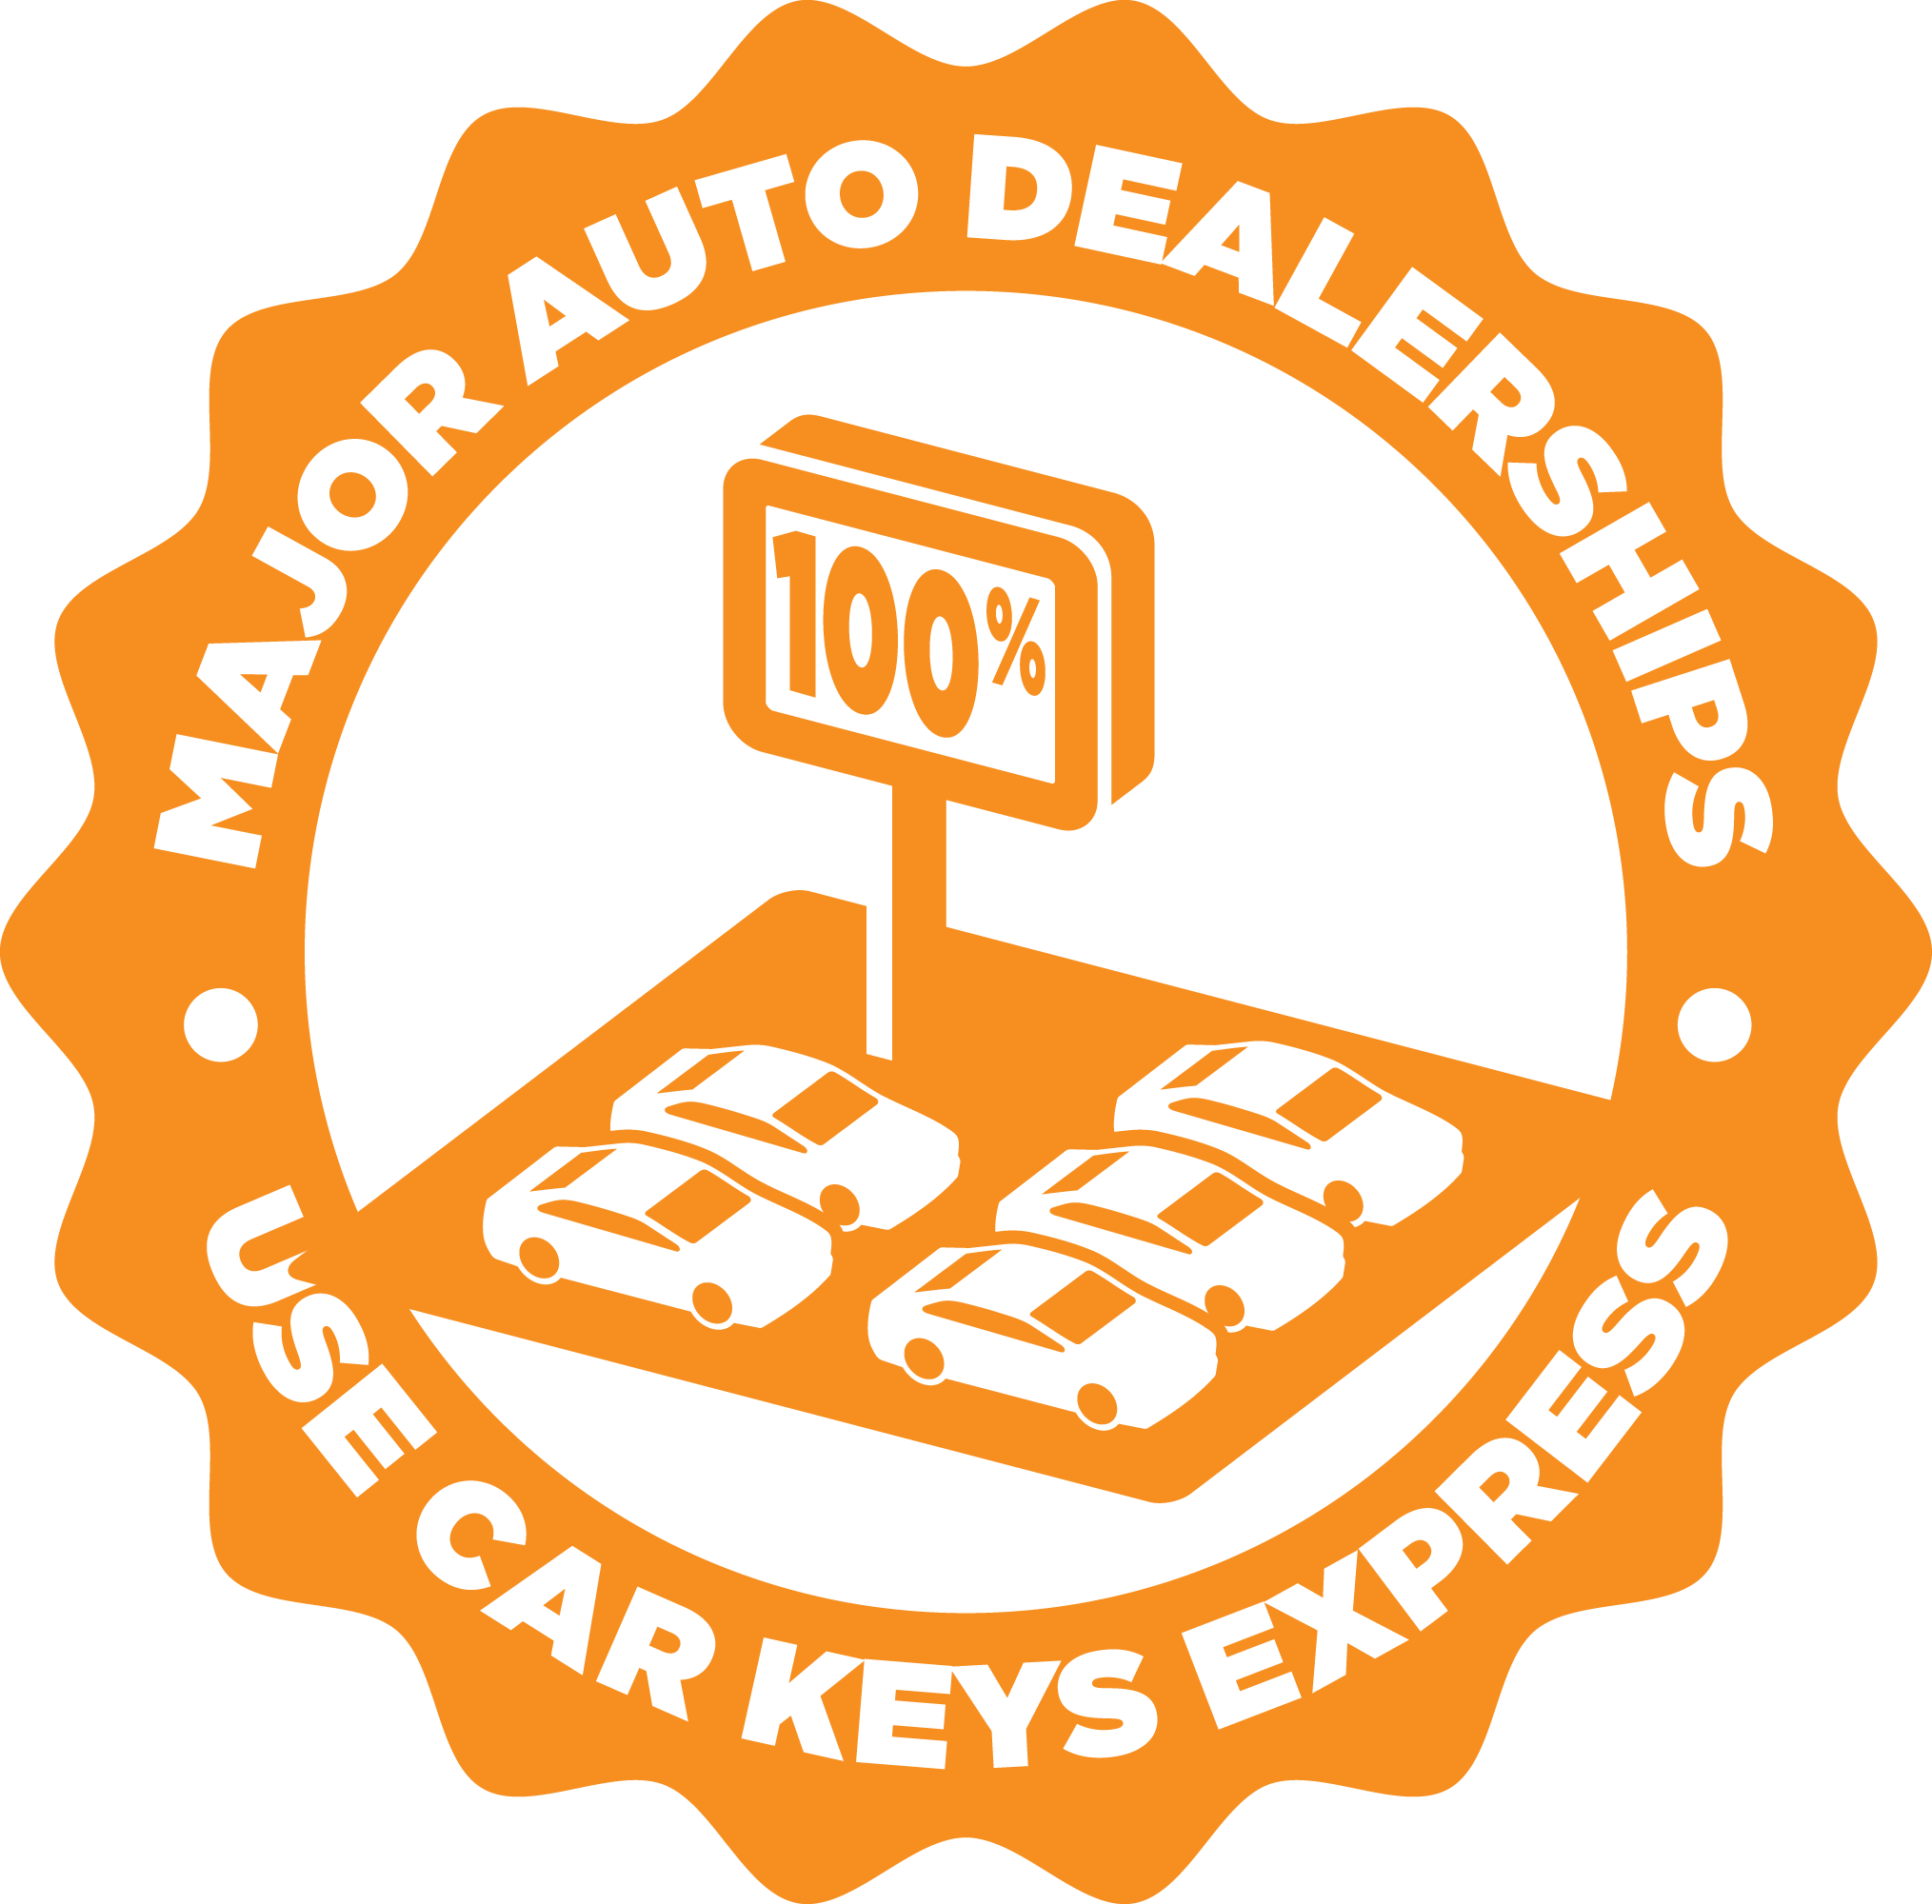 100% of major dealership groups use CarKeysExpress